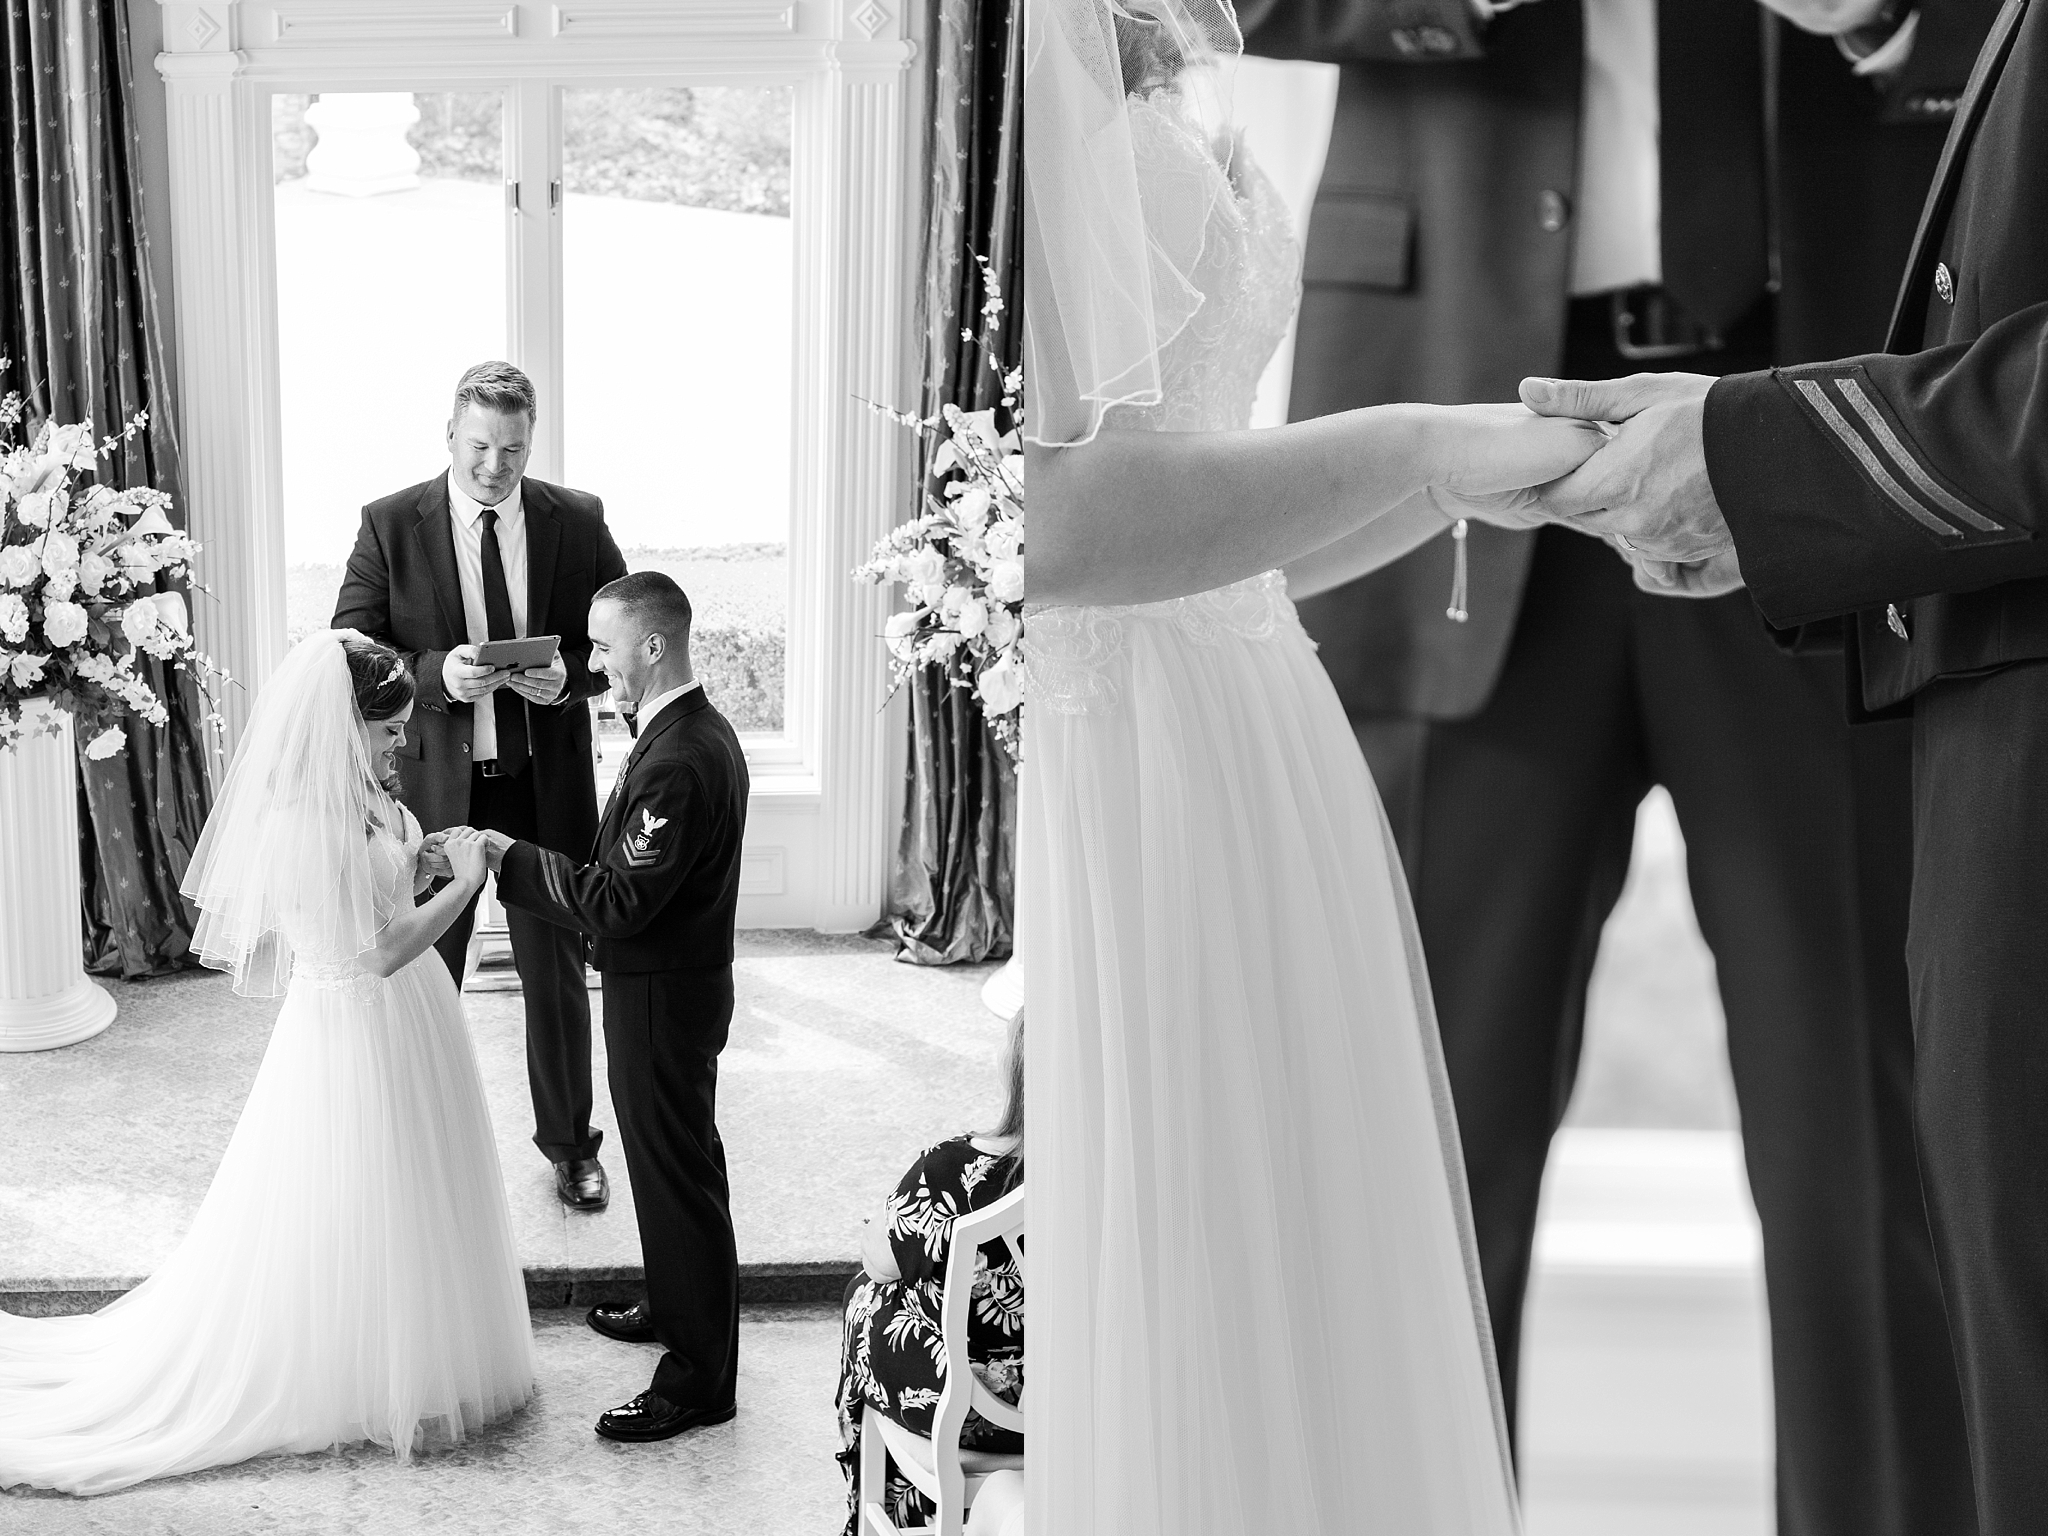 romantic-artful-candid-wedding-photos-in-st-clair-shores-at-the-white-house-wedding-chapel-by-courtney-carolyn-photography_0032.jpg